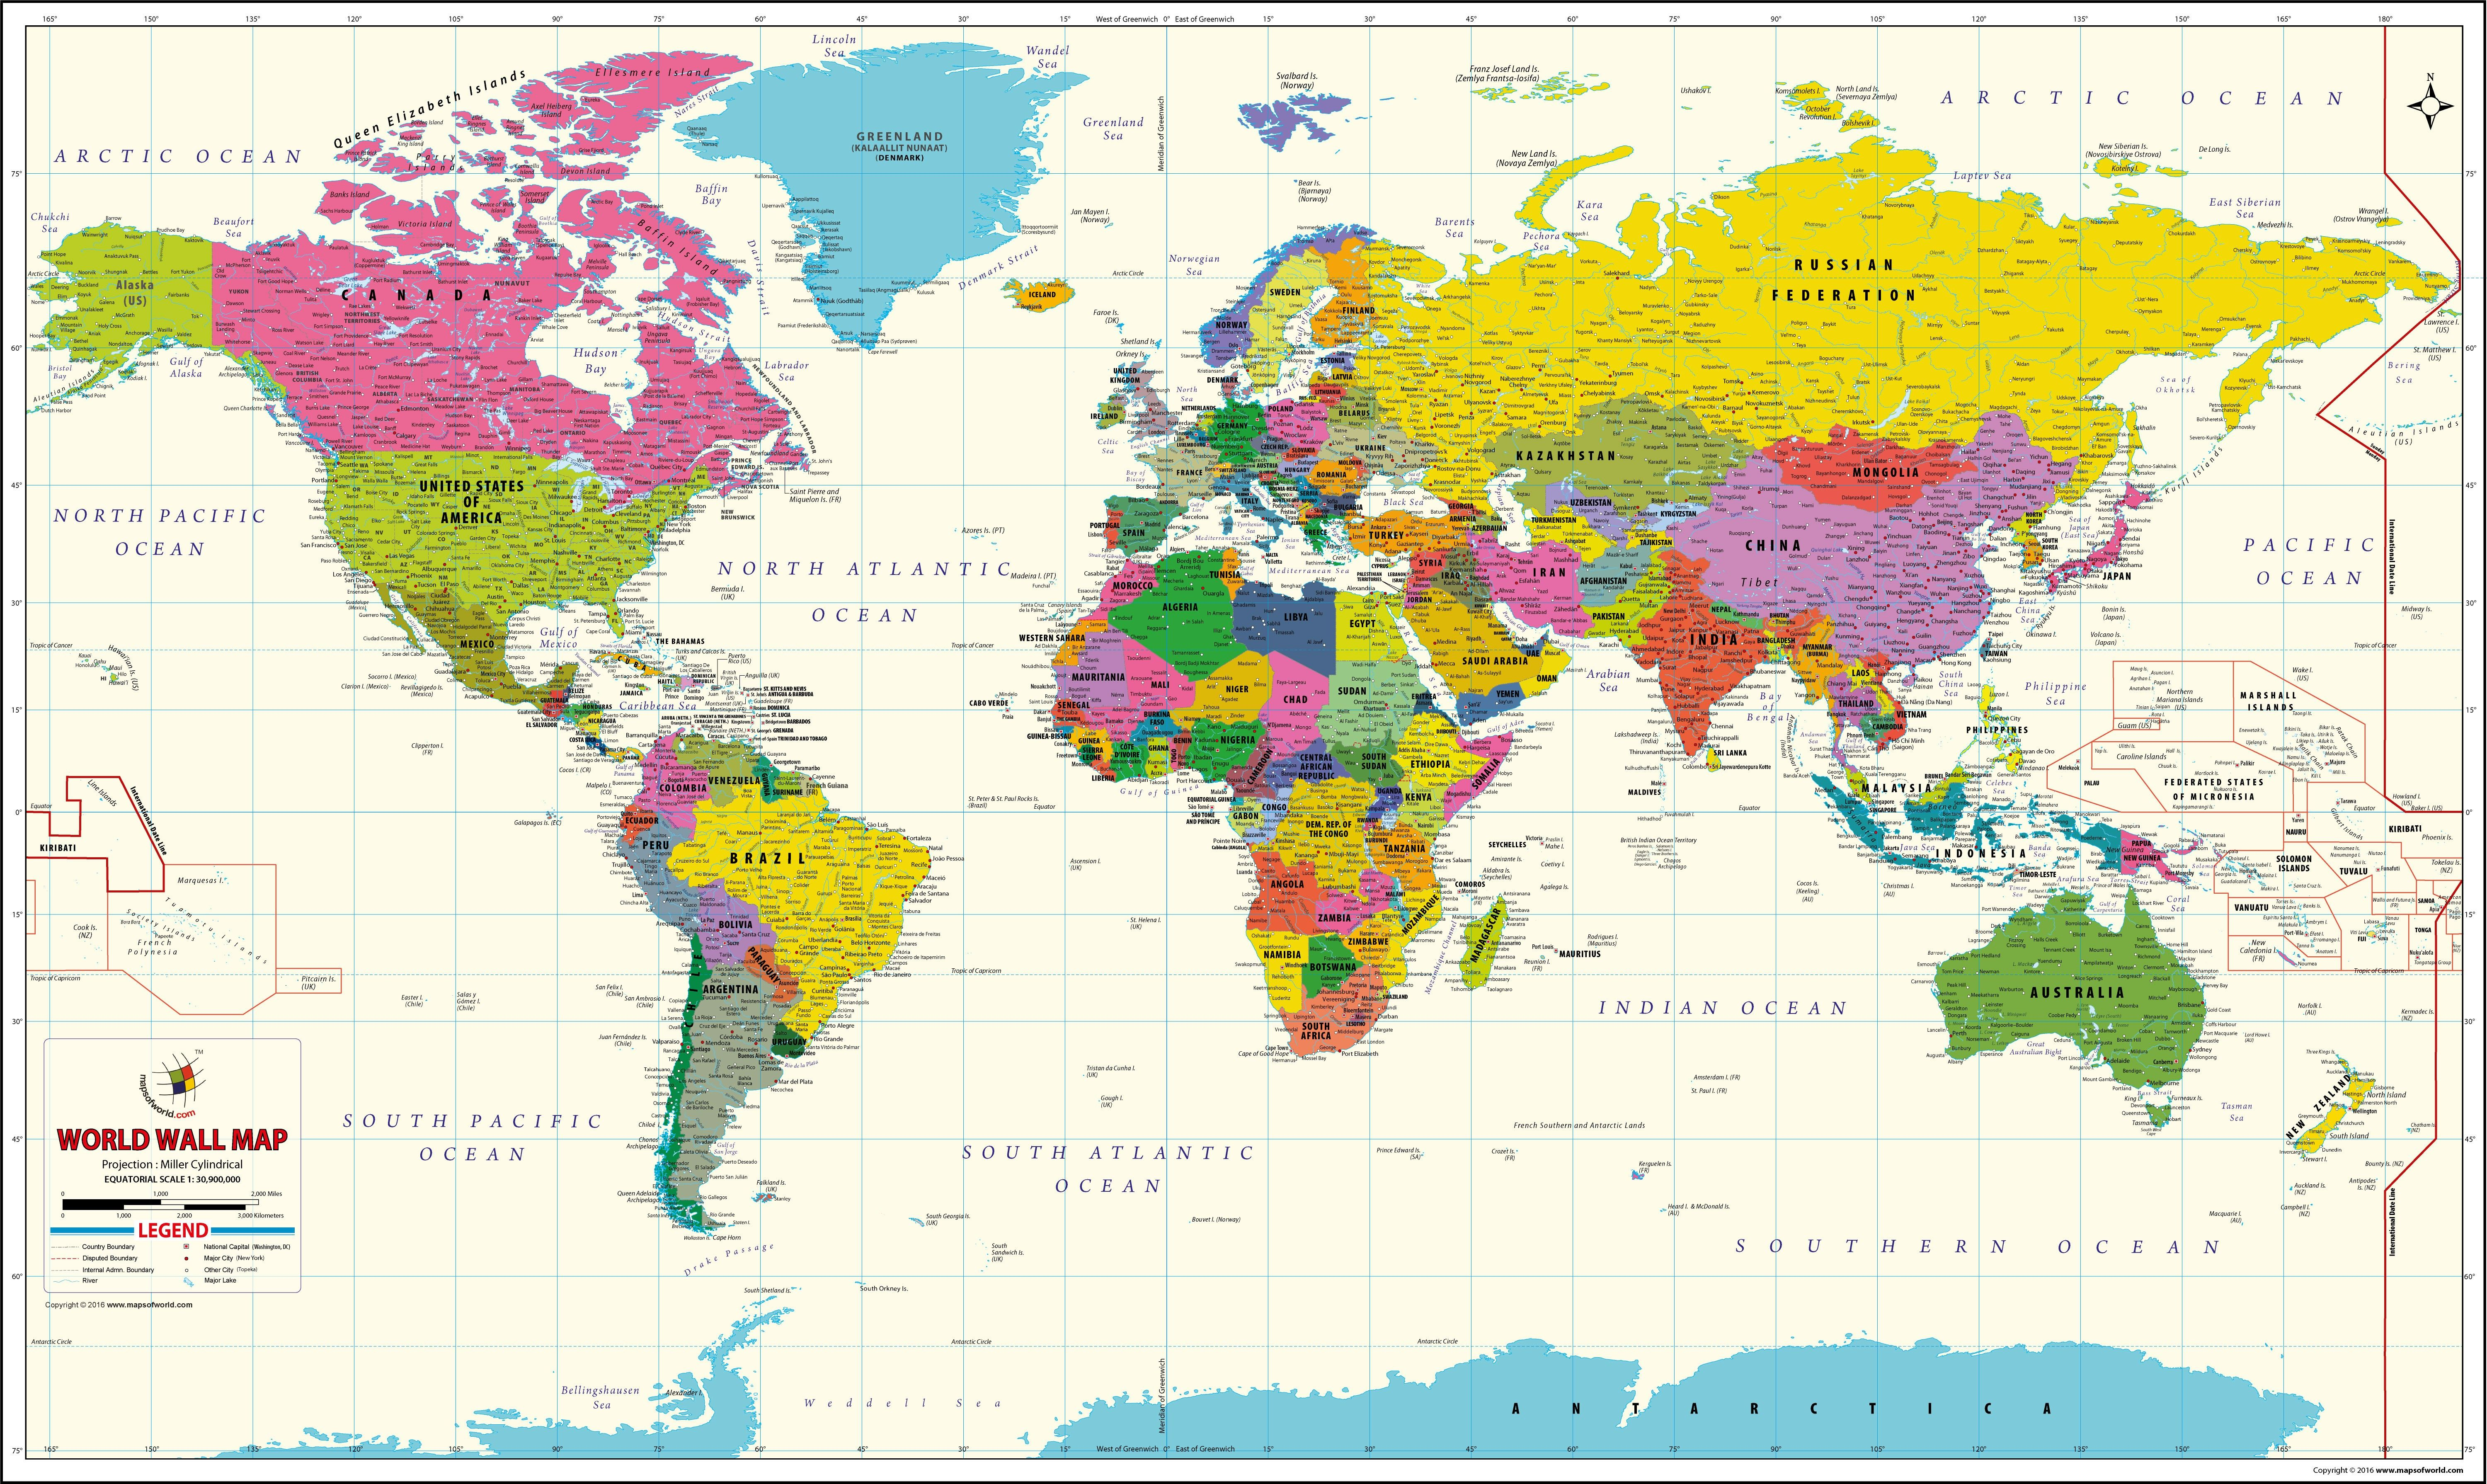 World Map Poster India World Map India Location Copy Collection Diagram World Map India 6000 X 3580 Pixels Word Map Map India World Map